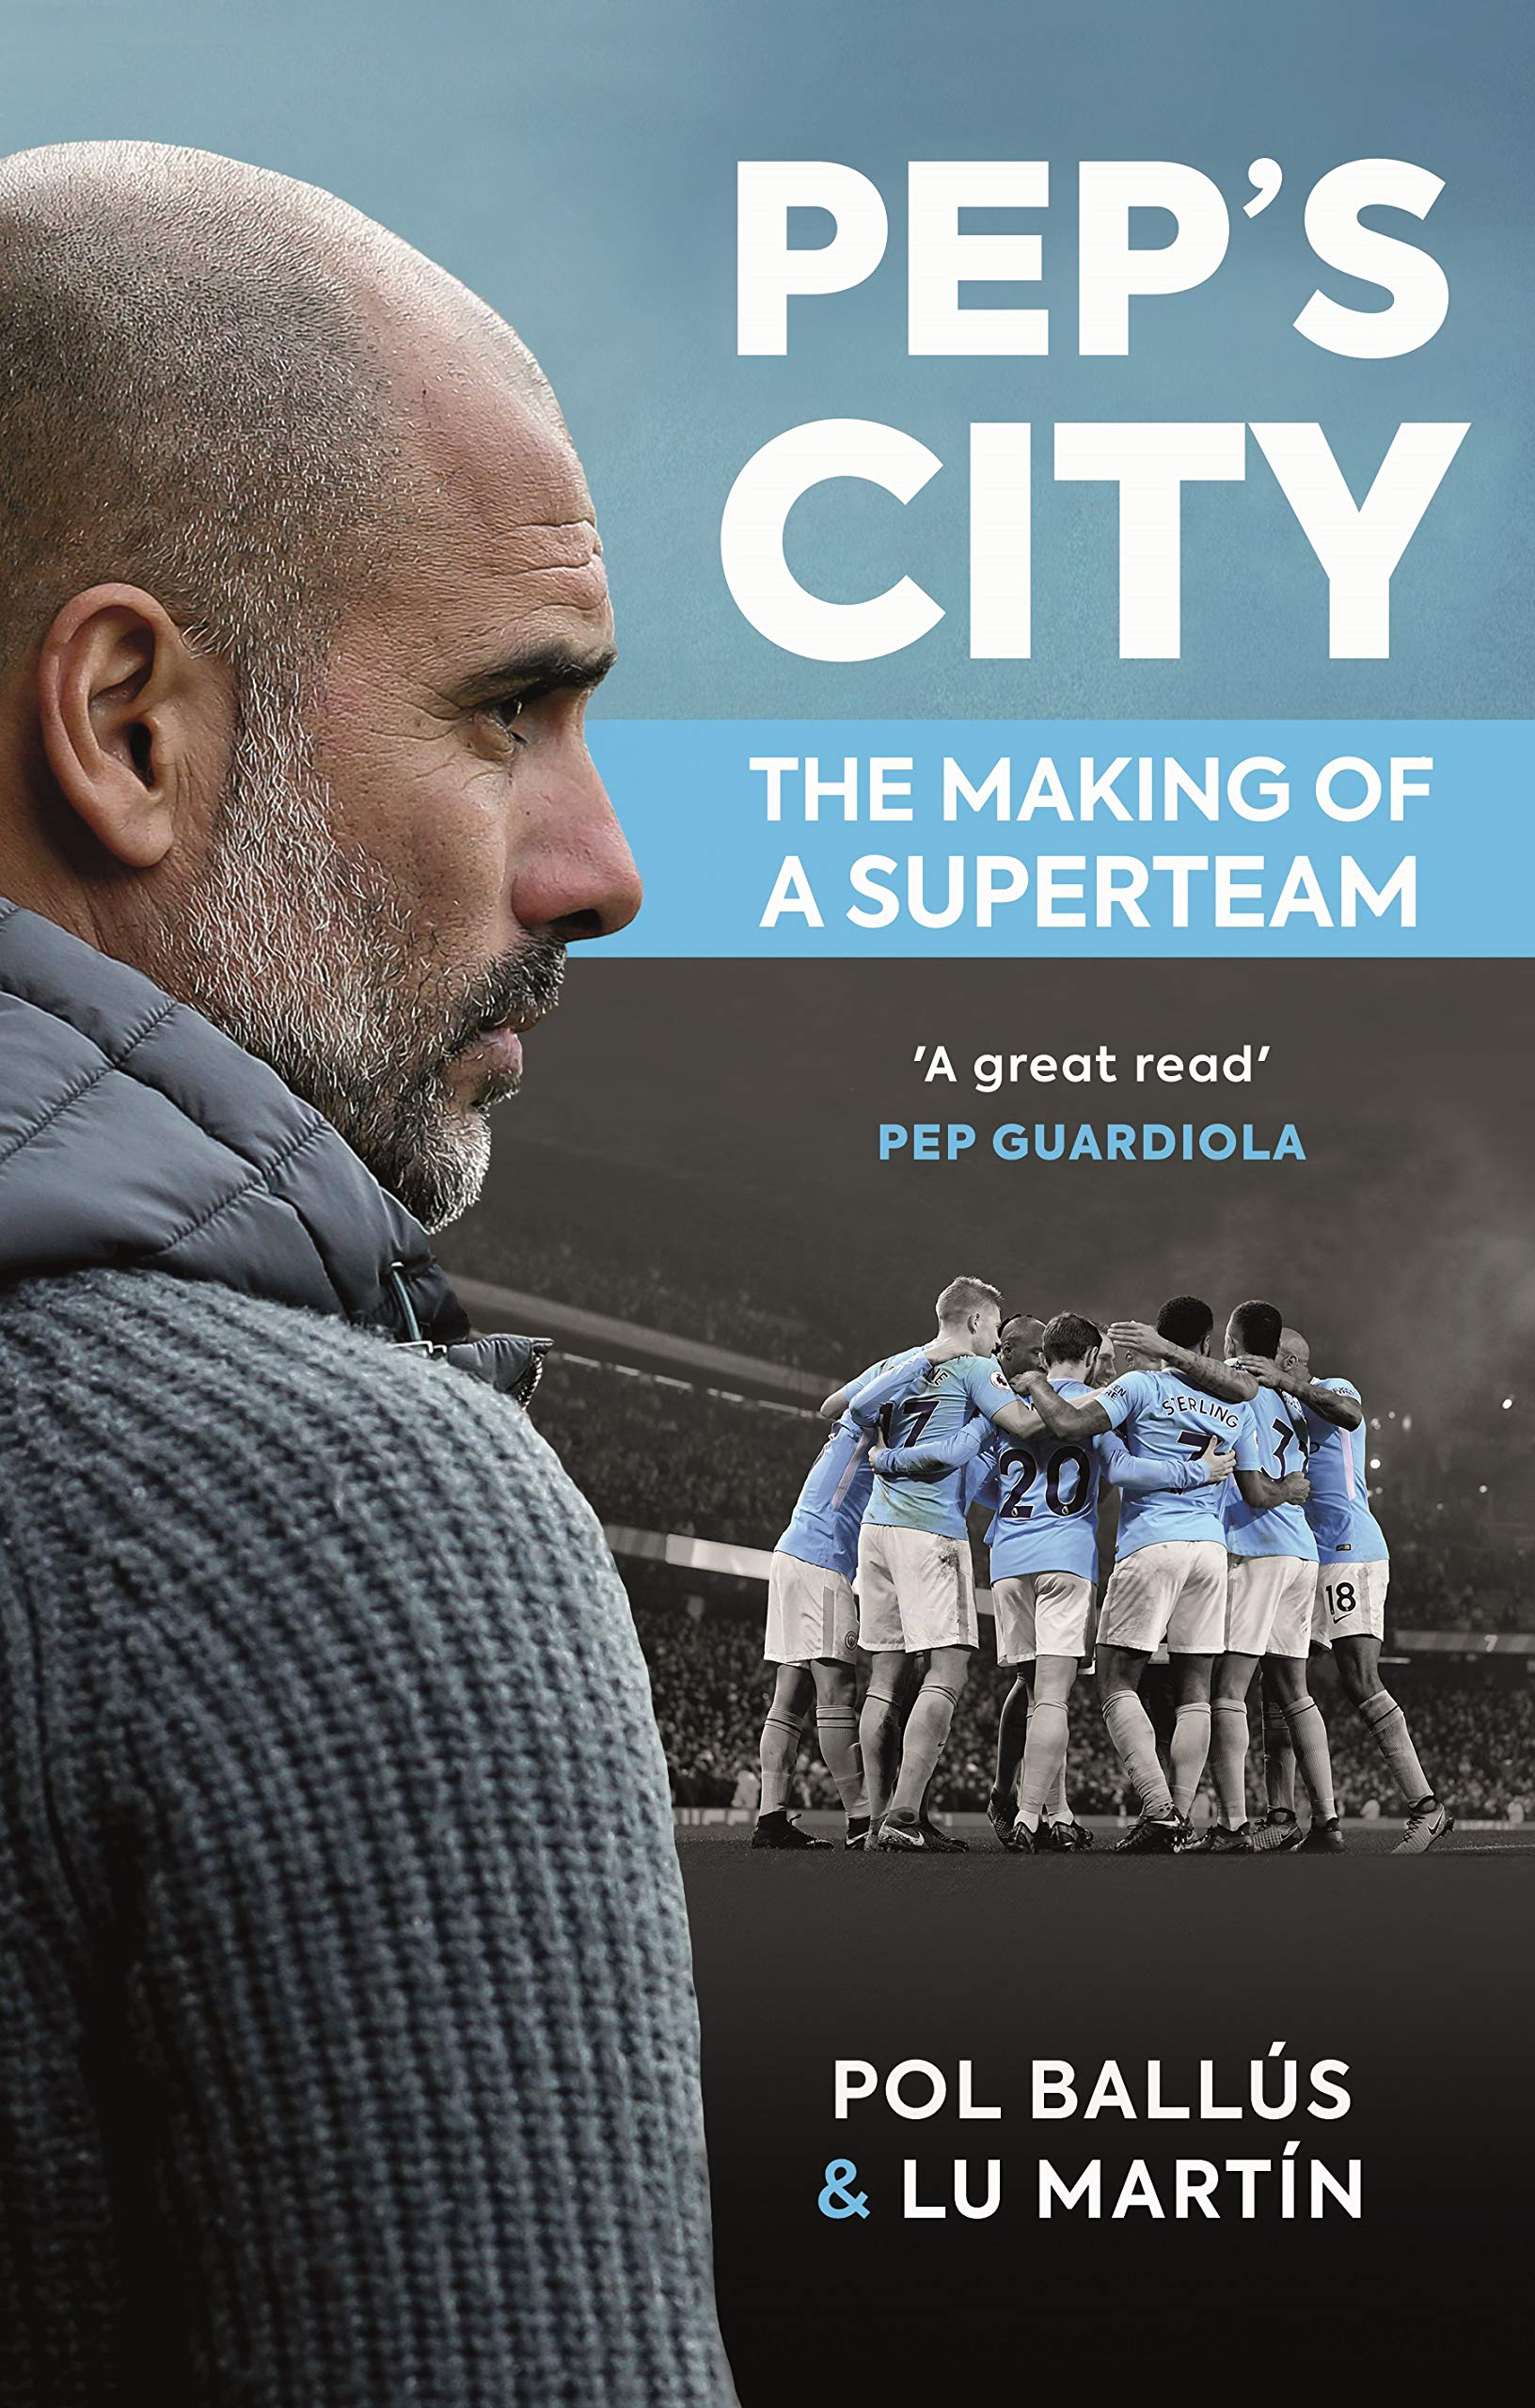 Pep's City: The Making of a Superteam: Amazon.co.uk: Lu Martín, Pol Ballús:  9781909430402: Books